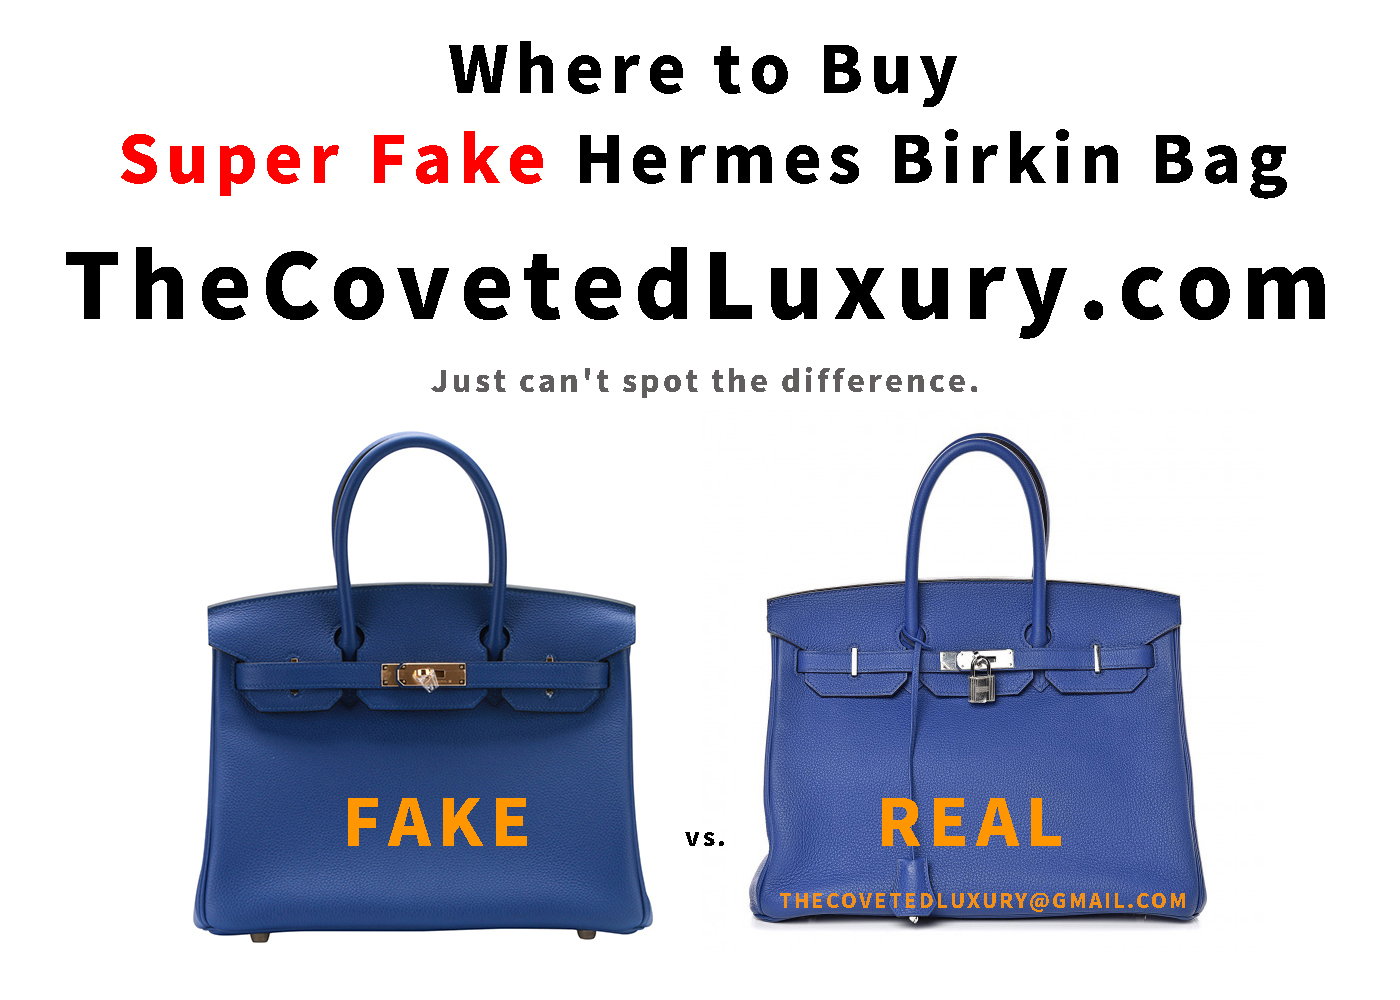 Hermes Replica Quality vs Authentic Hermes